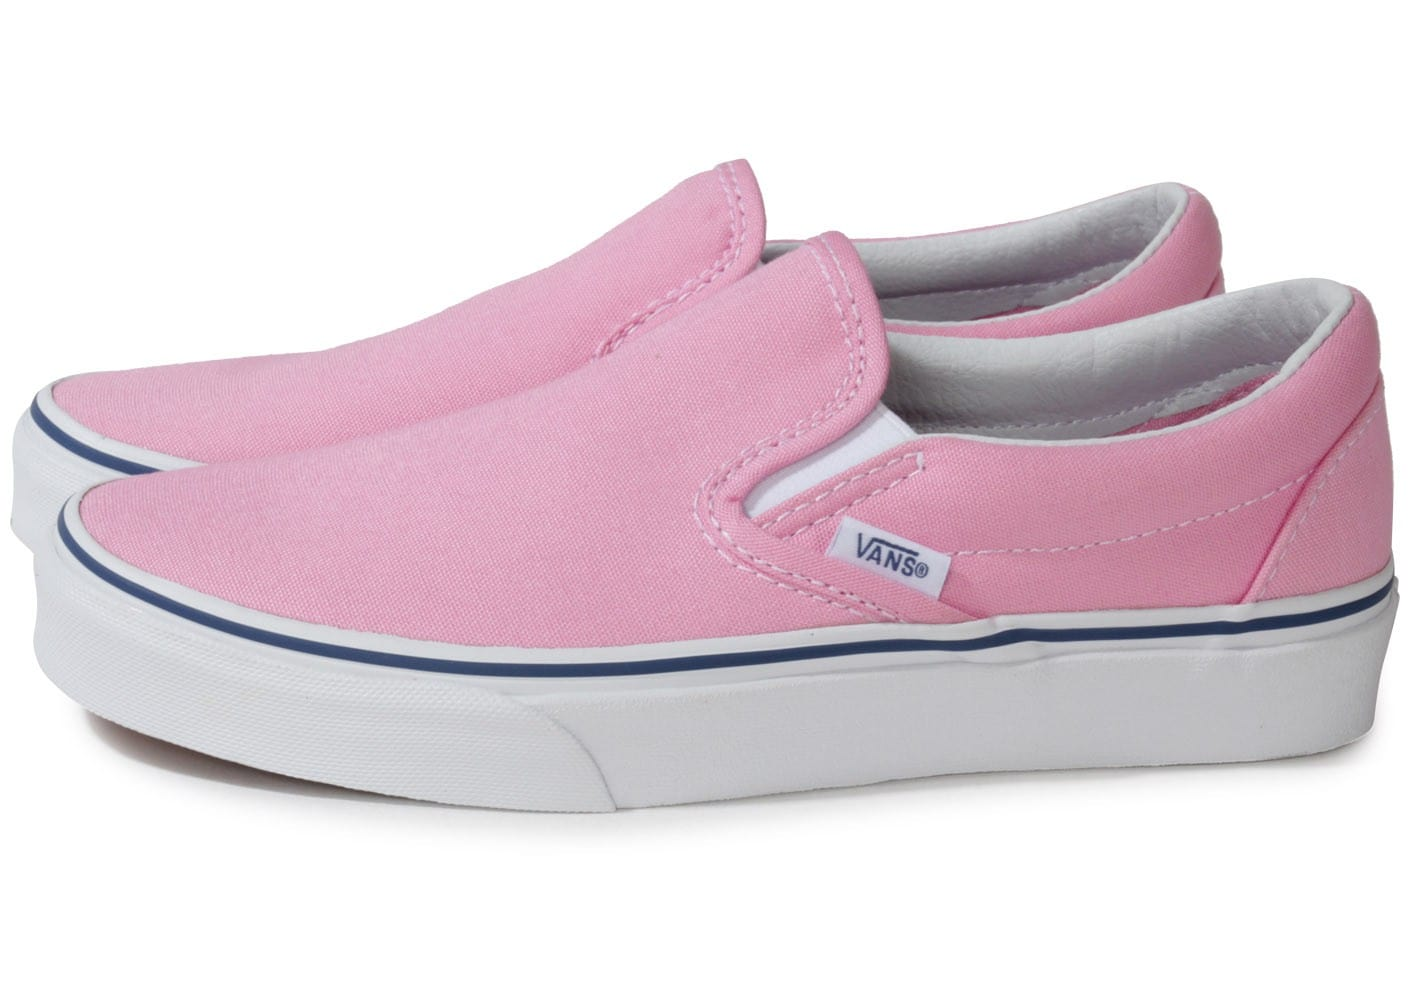 Vans Classic Slip-on Rose - Chaussures Chaussures - Chausport